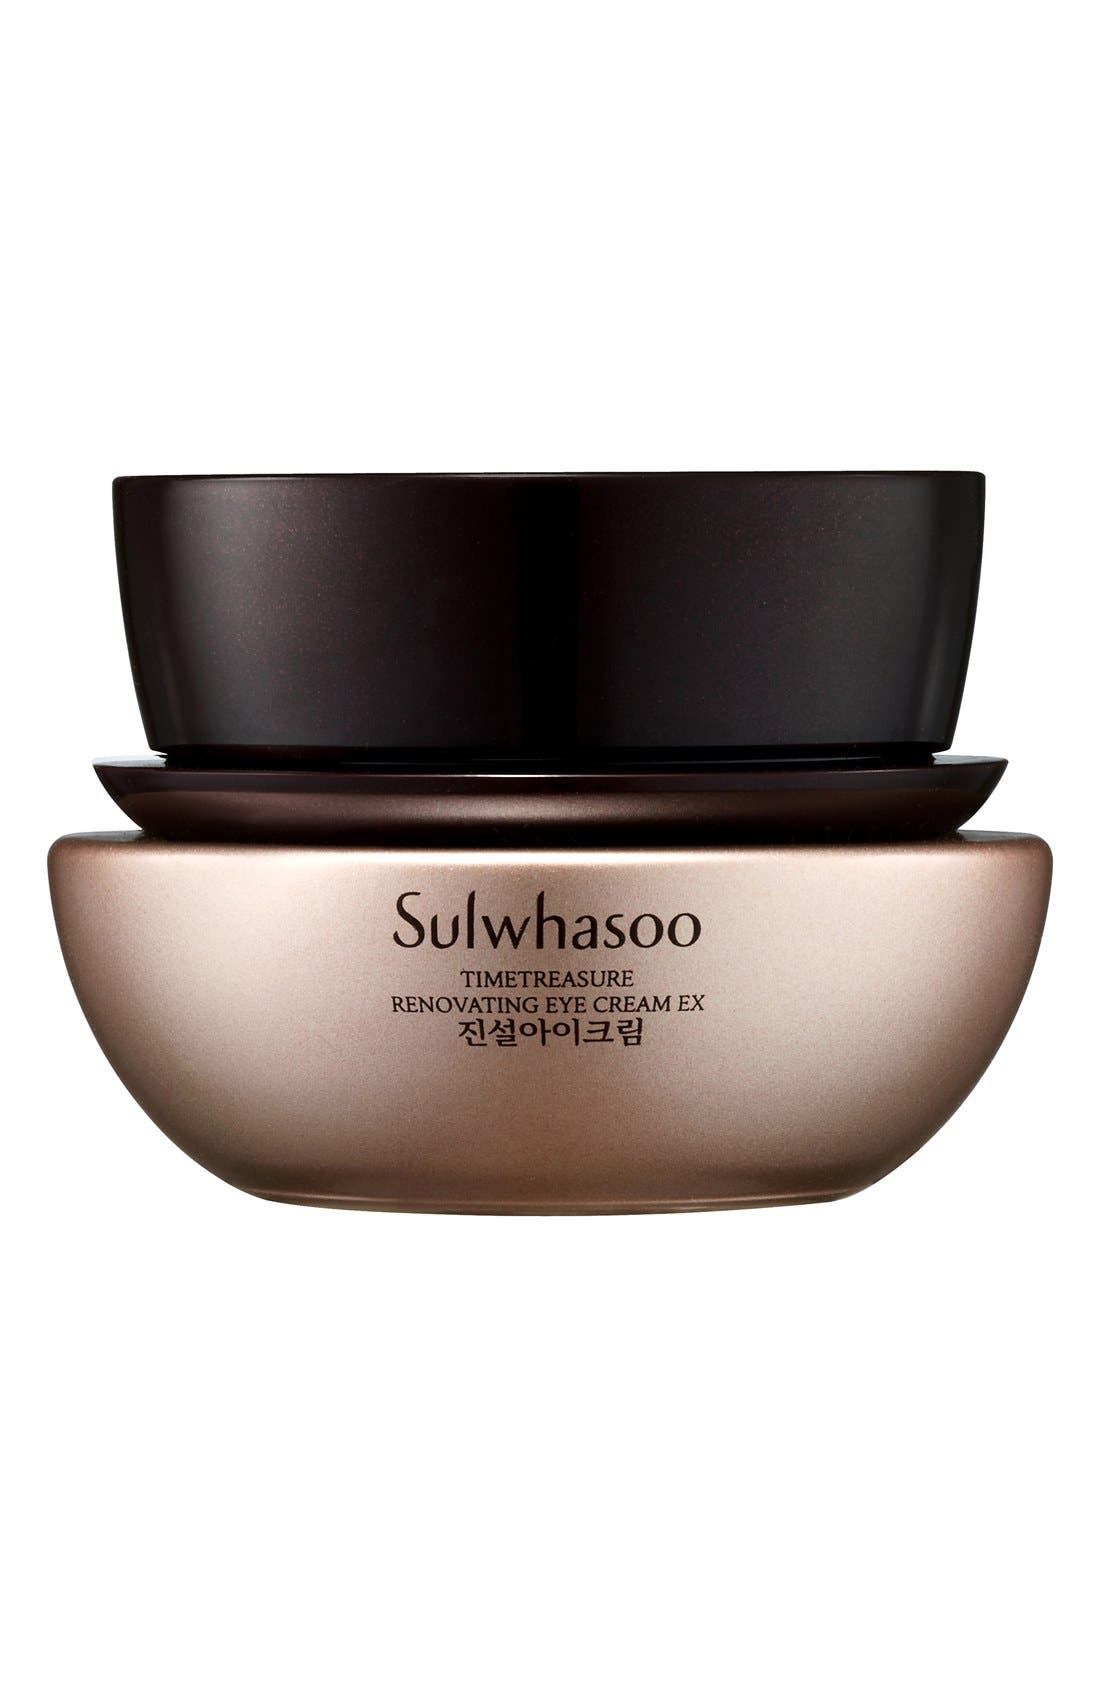 SULWHASOO, Timetreasure Renovating Eye Cream EX, Main thumbnail 1, color, NO COLOR